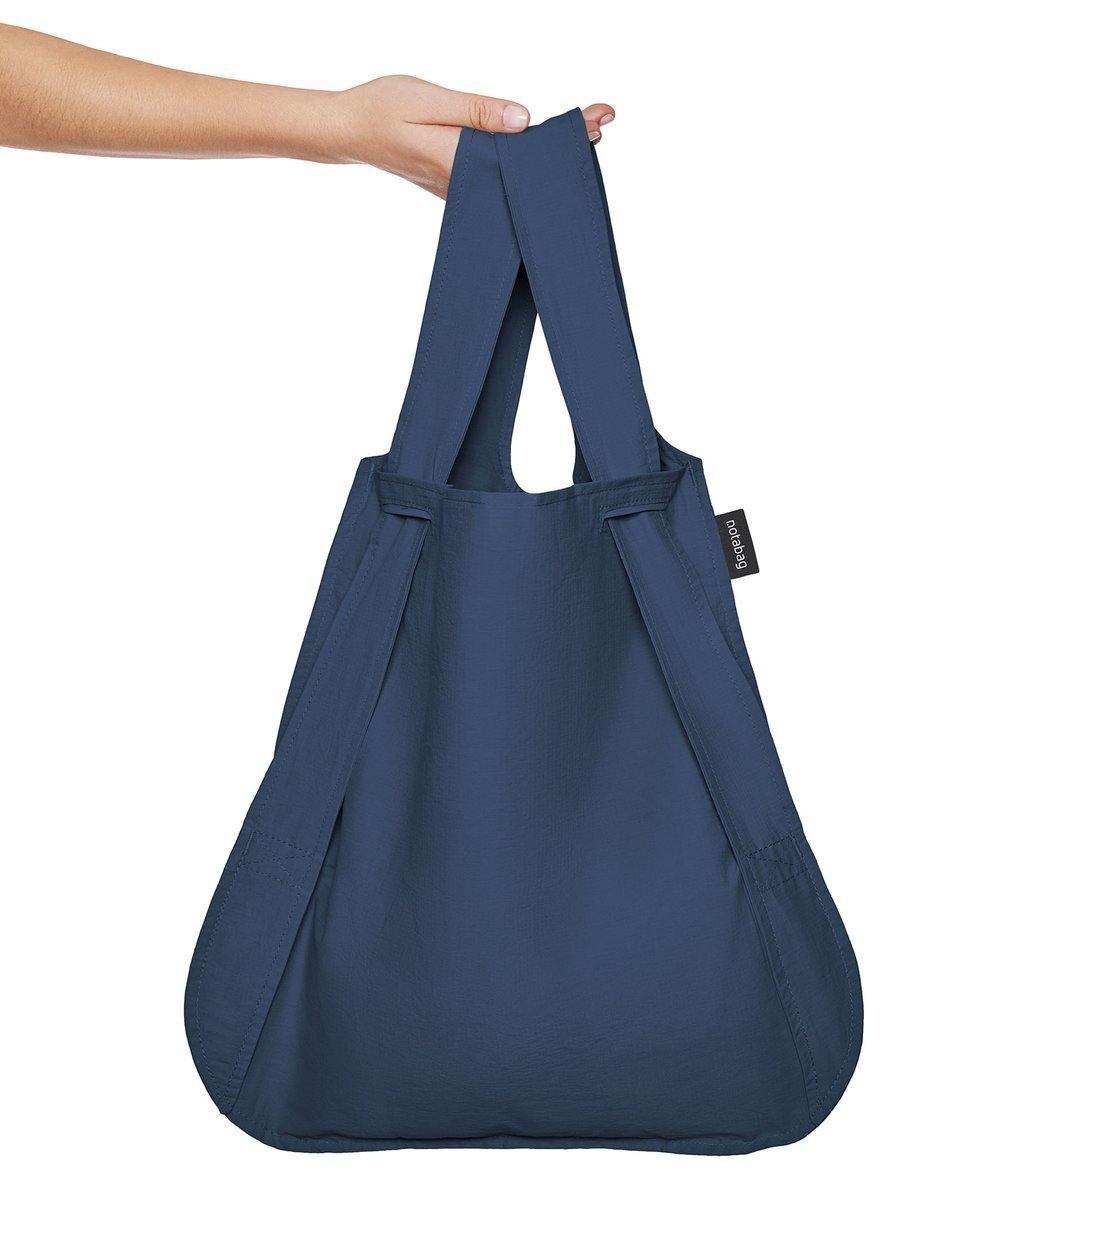 NOTABAG-Navy-Blue-04.jpg